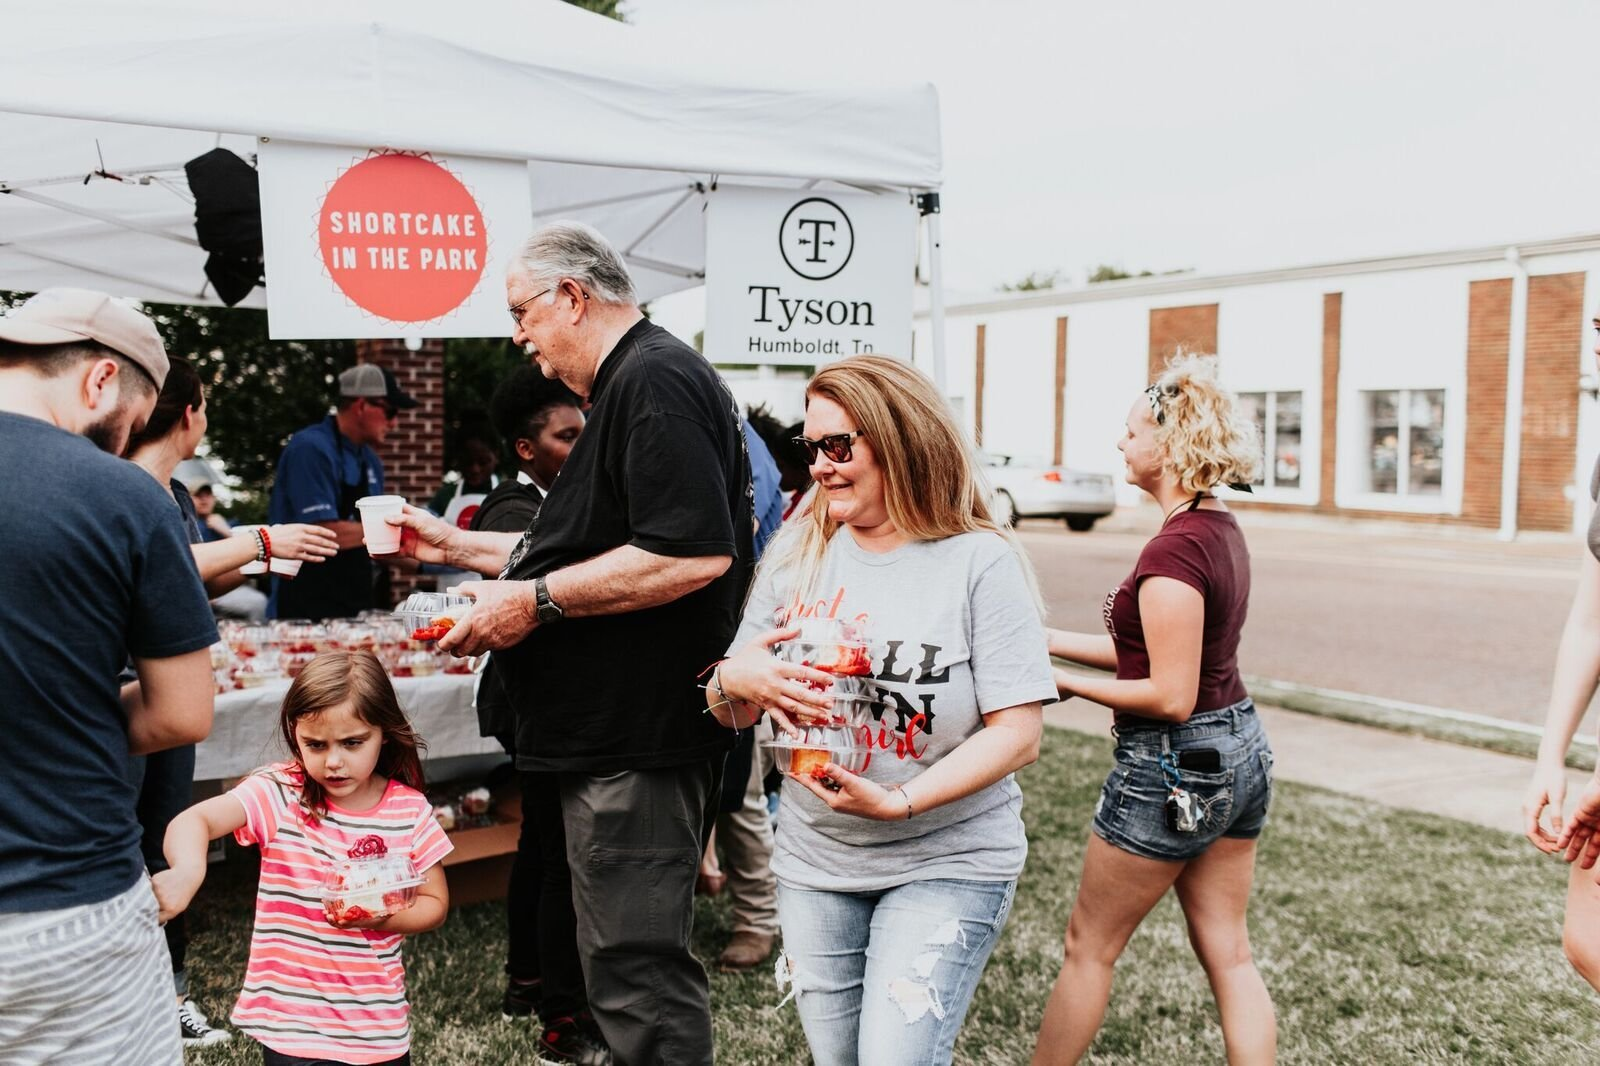 2019 West Tennessee Strawberry Festival - Shortcake in the park - 57